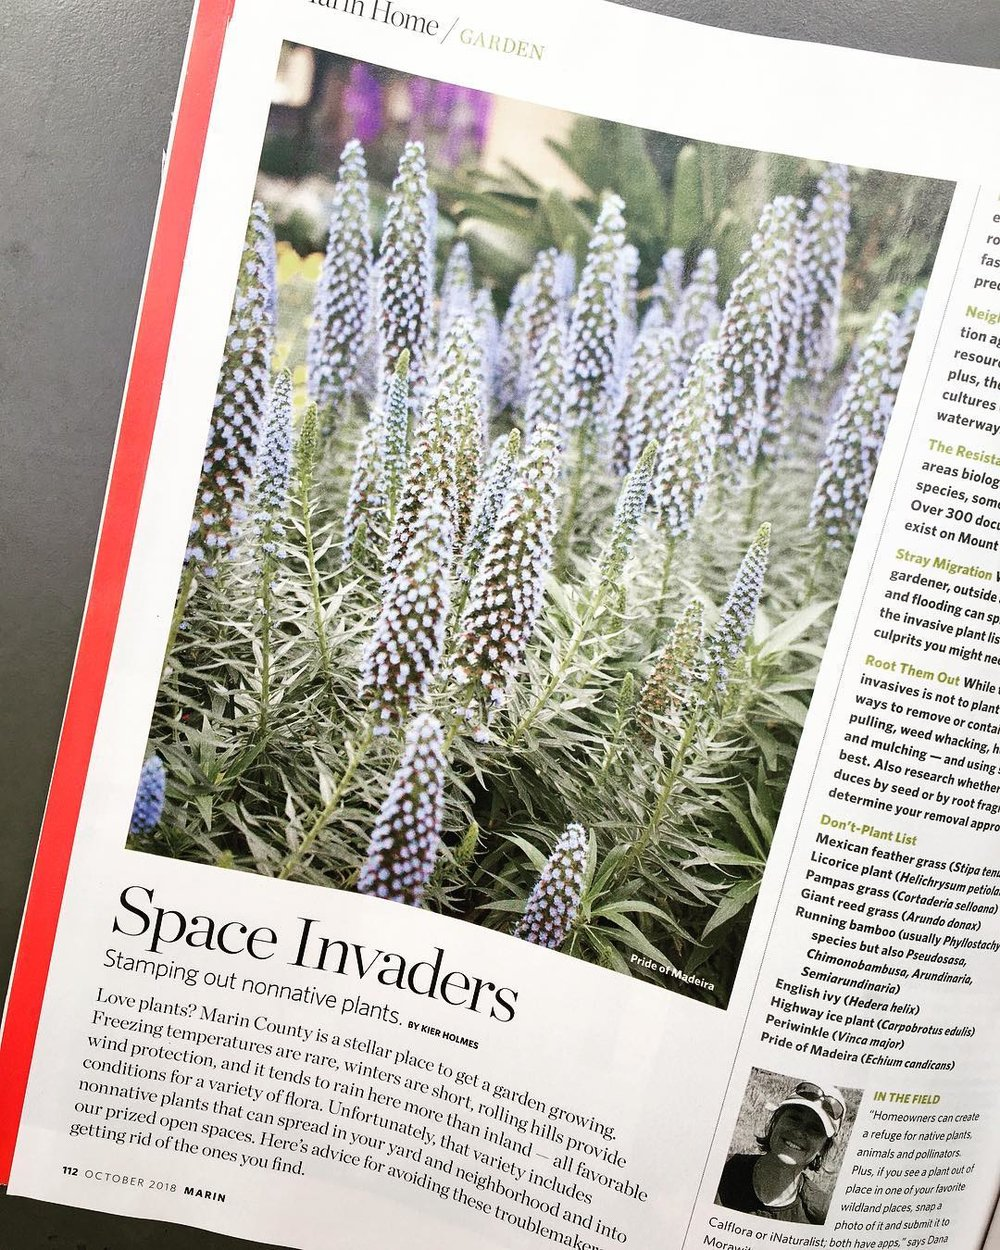 Native Plants - Today consider choosing more native plants and less invasive plants. In Marin Magazine I write about this important topic: Space Invaders. In the article, I list top Marin invasive plants and discuss removal ideas. Please check it out to learn more and to help stop the spread of invasive non native plants into our prized open spaces. These plant bullies can cause environmental and economic harm and by avoiding and removing these invaders you are helping protect Marin's prized beauty. #marincounty #littlethings #littleactsbigchange#invasiveplants #plants #nativeplants #gardening #smartgarden #instagood #freelancewriter